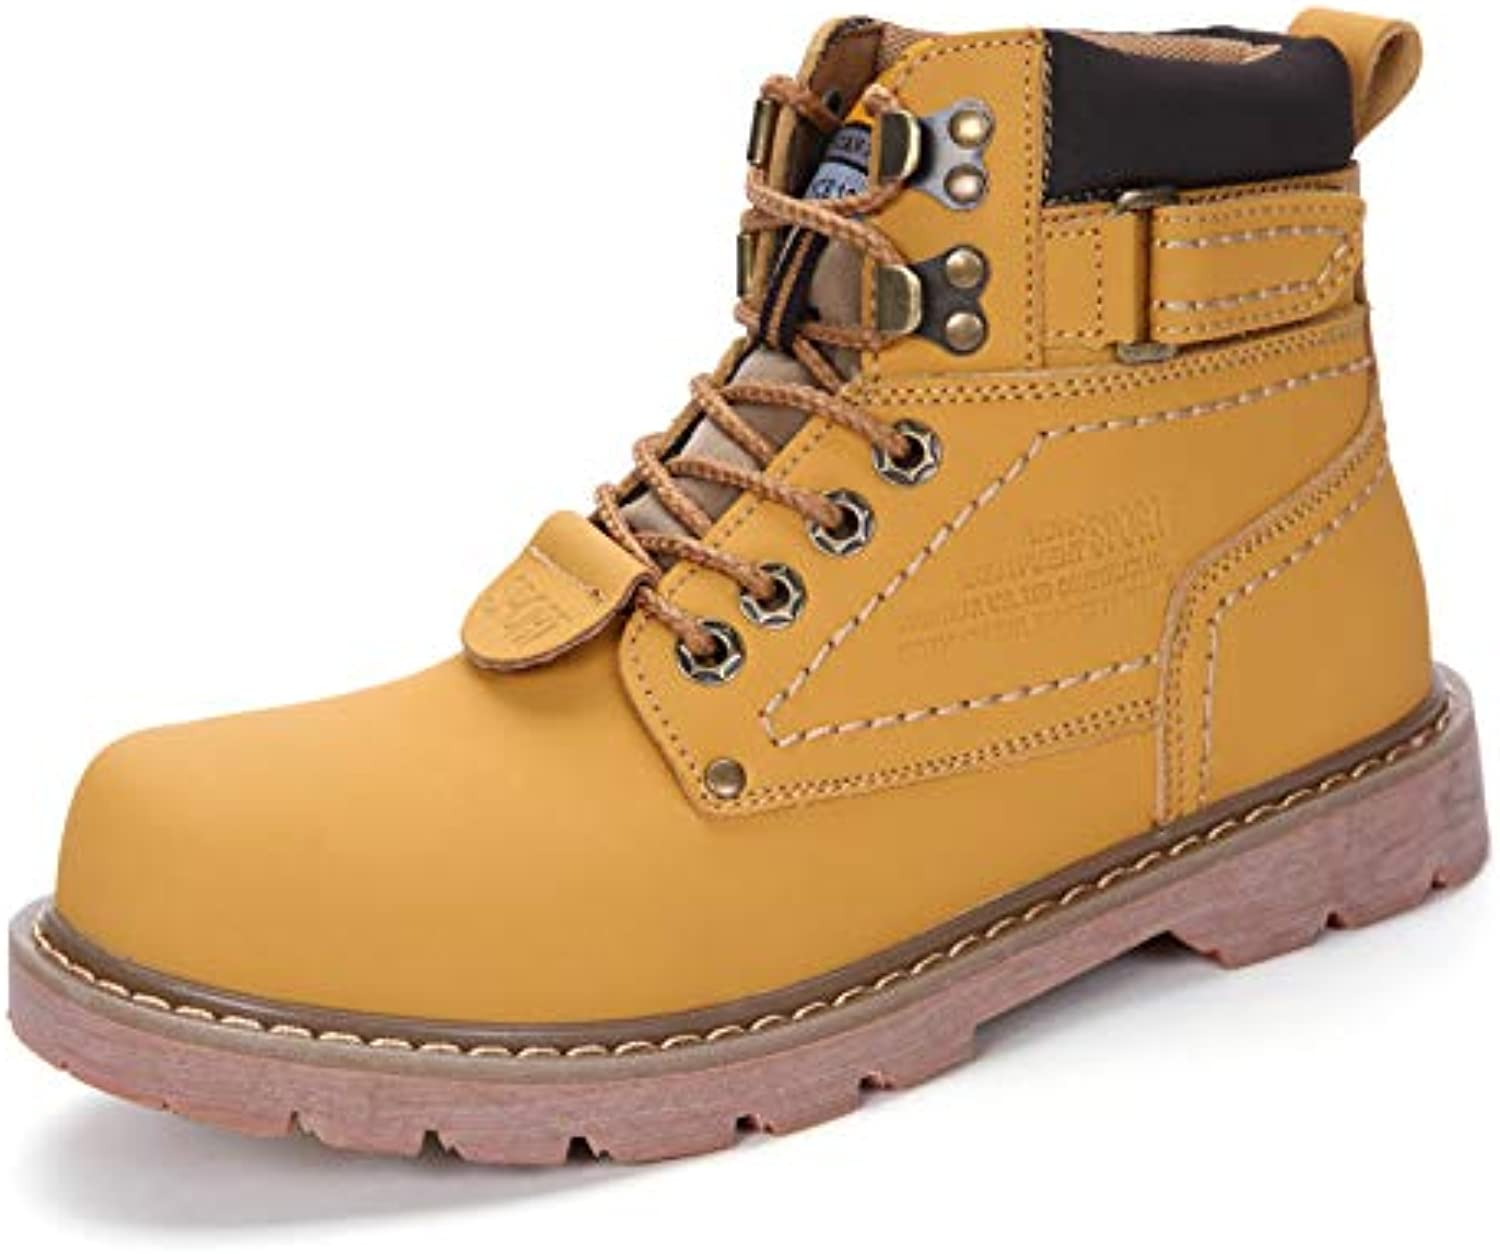 LOVDRAM Boots Men's Pu Men'S Boots Martin Boots Men'S Mid Men'S shoes Autumn Martin shoes Couple Snow Workwear Boots